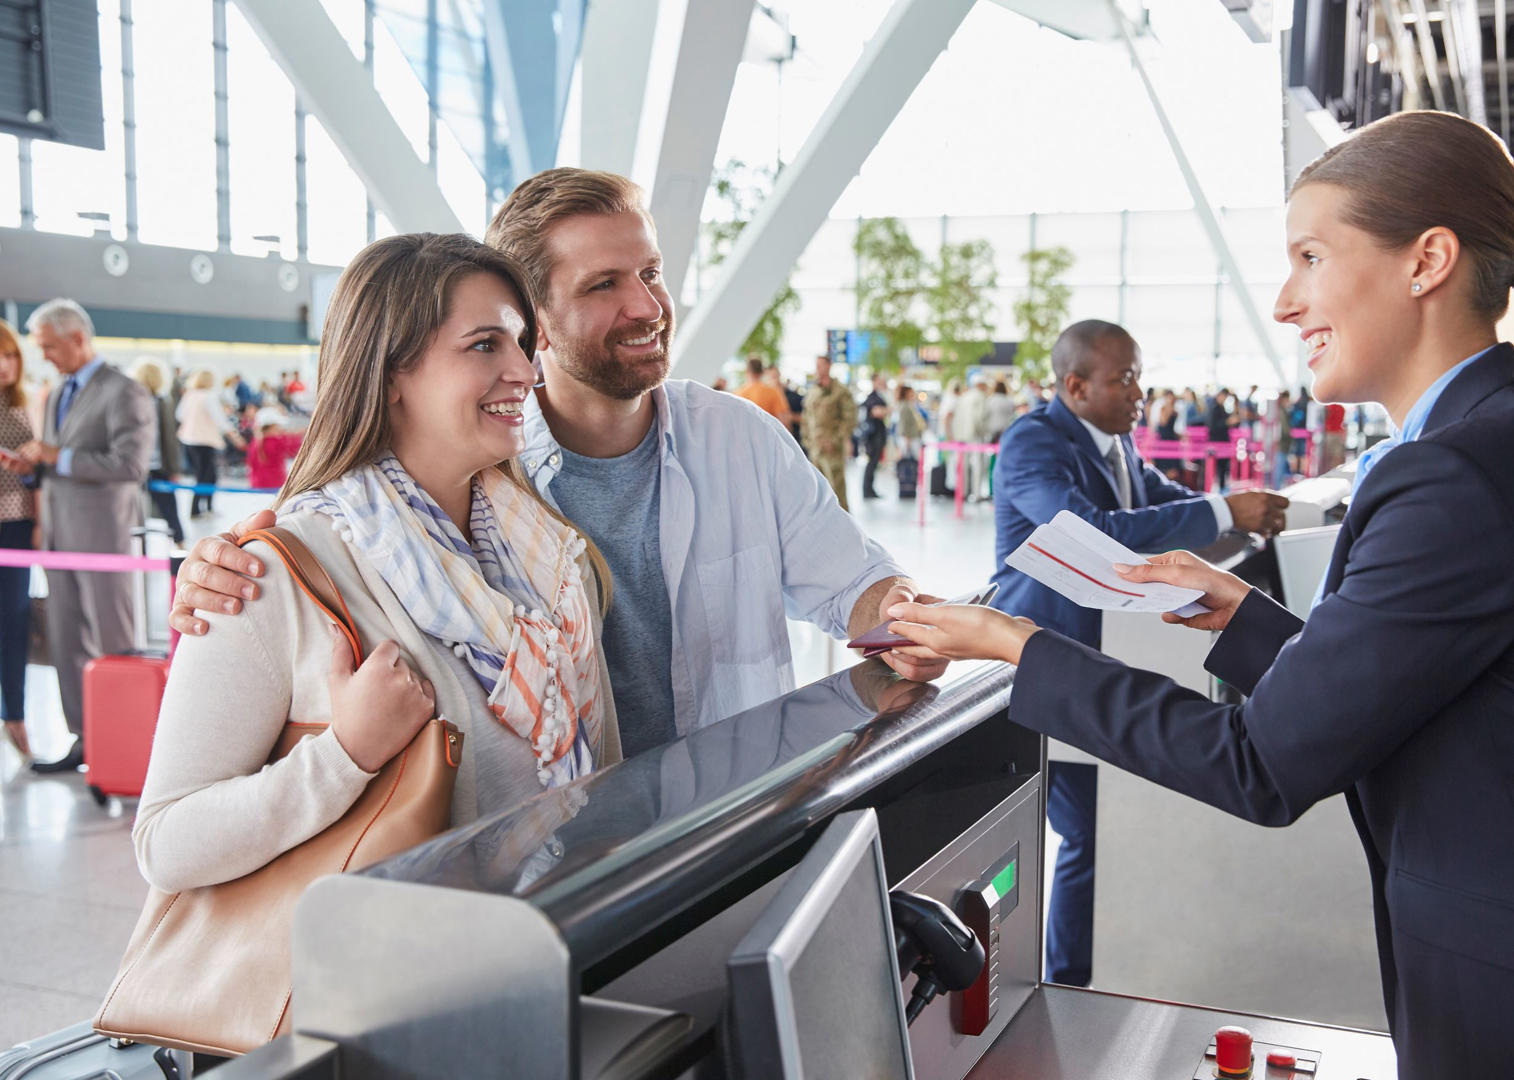 Slide 1 of 9: Customer service representative helping couple at airport check-in counter